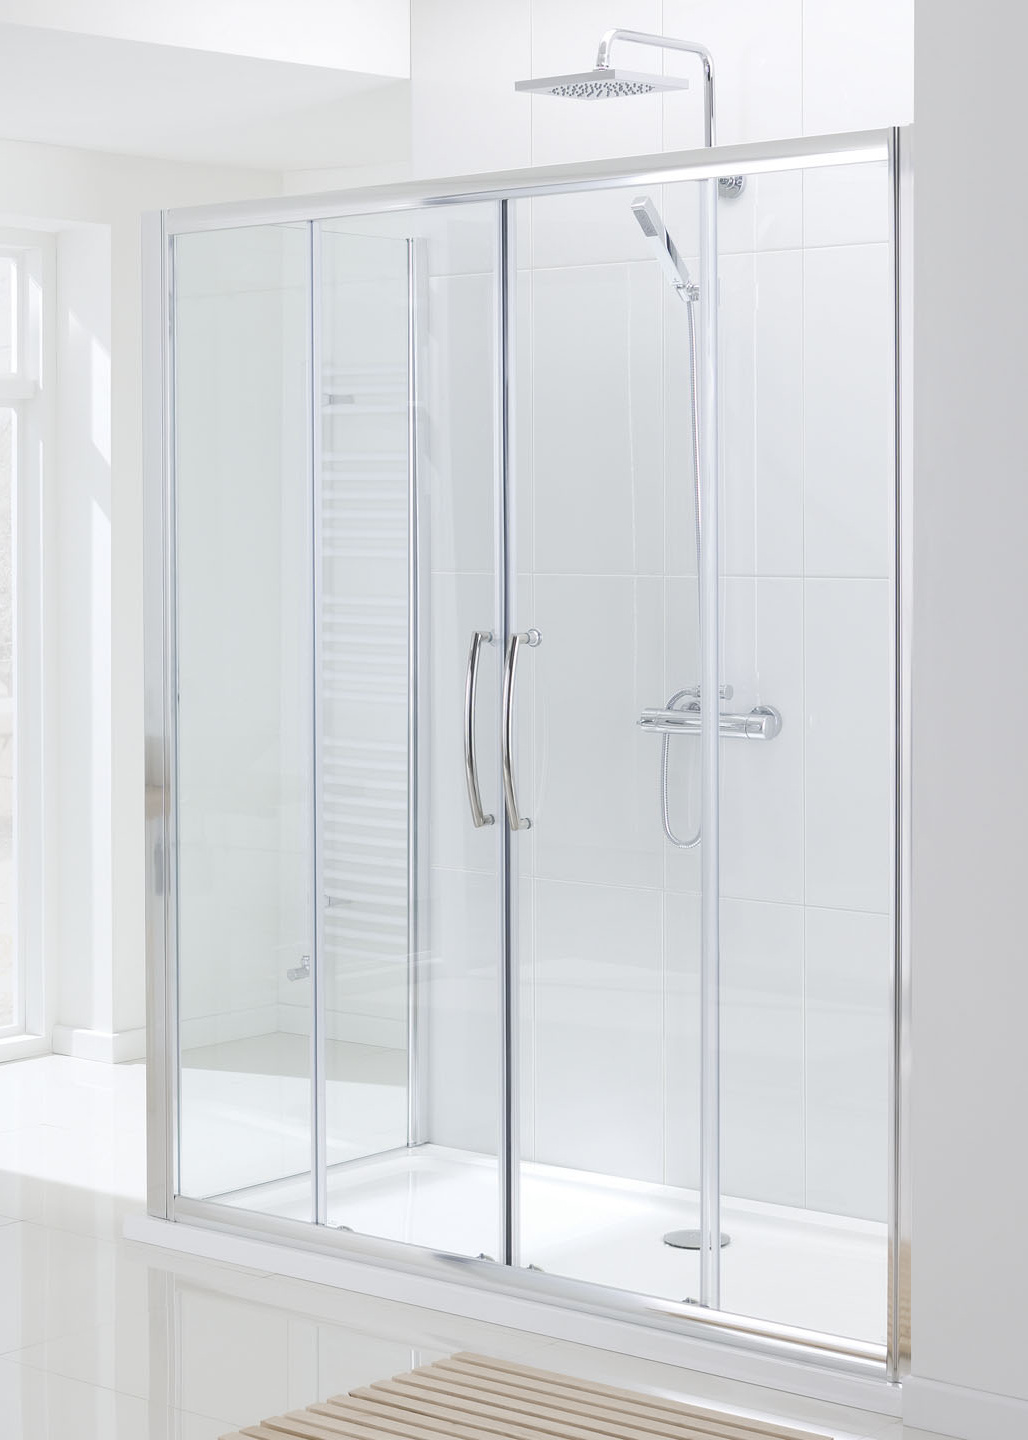 shower city buy semi frameless online product design bathroom at hinged door designer